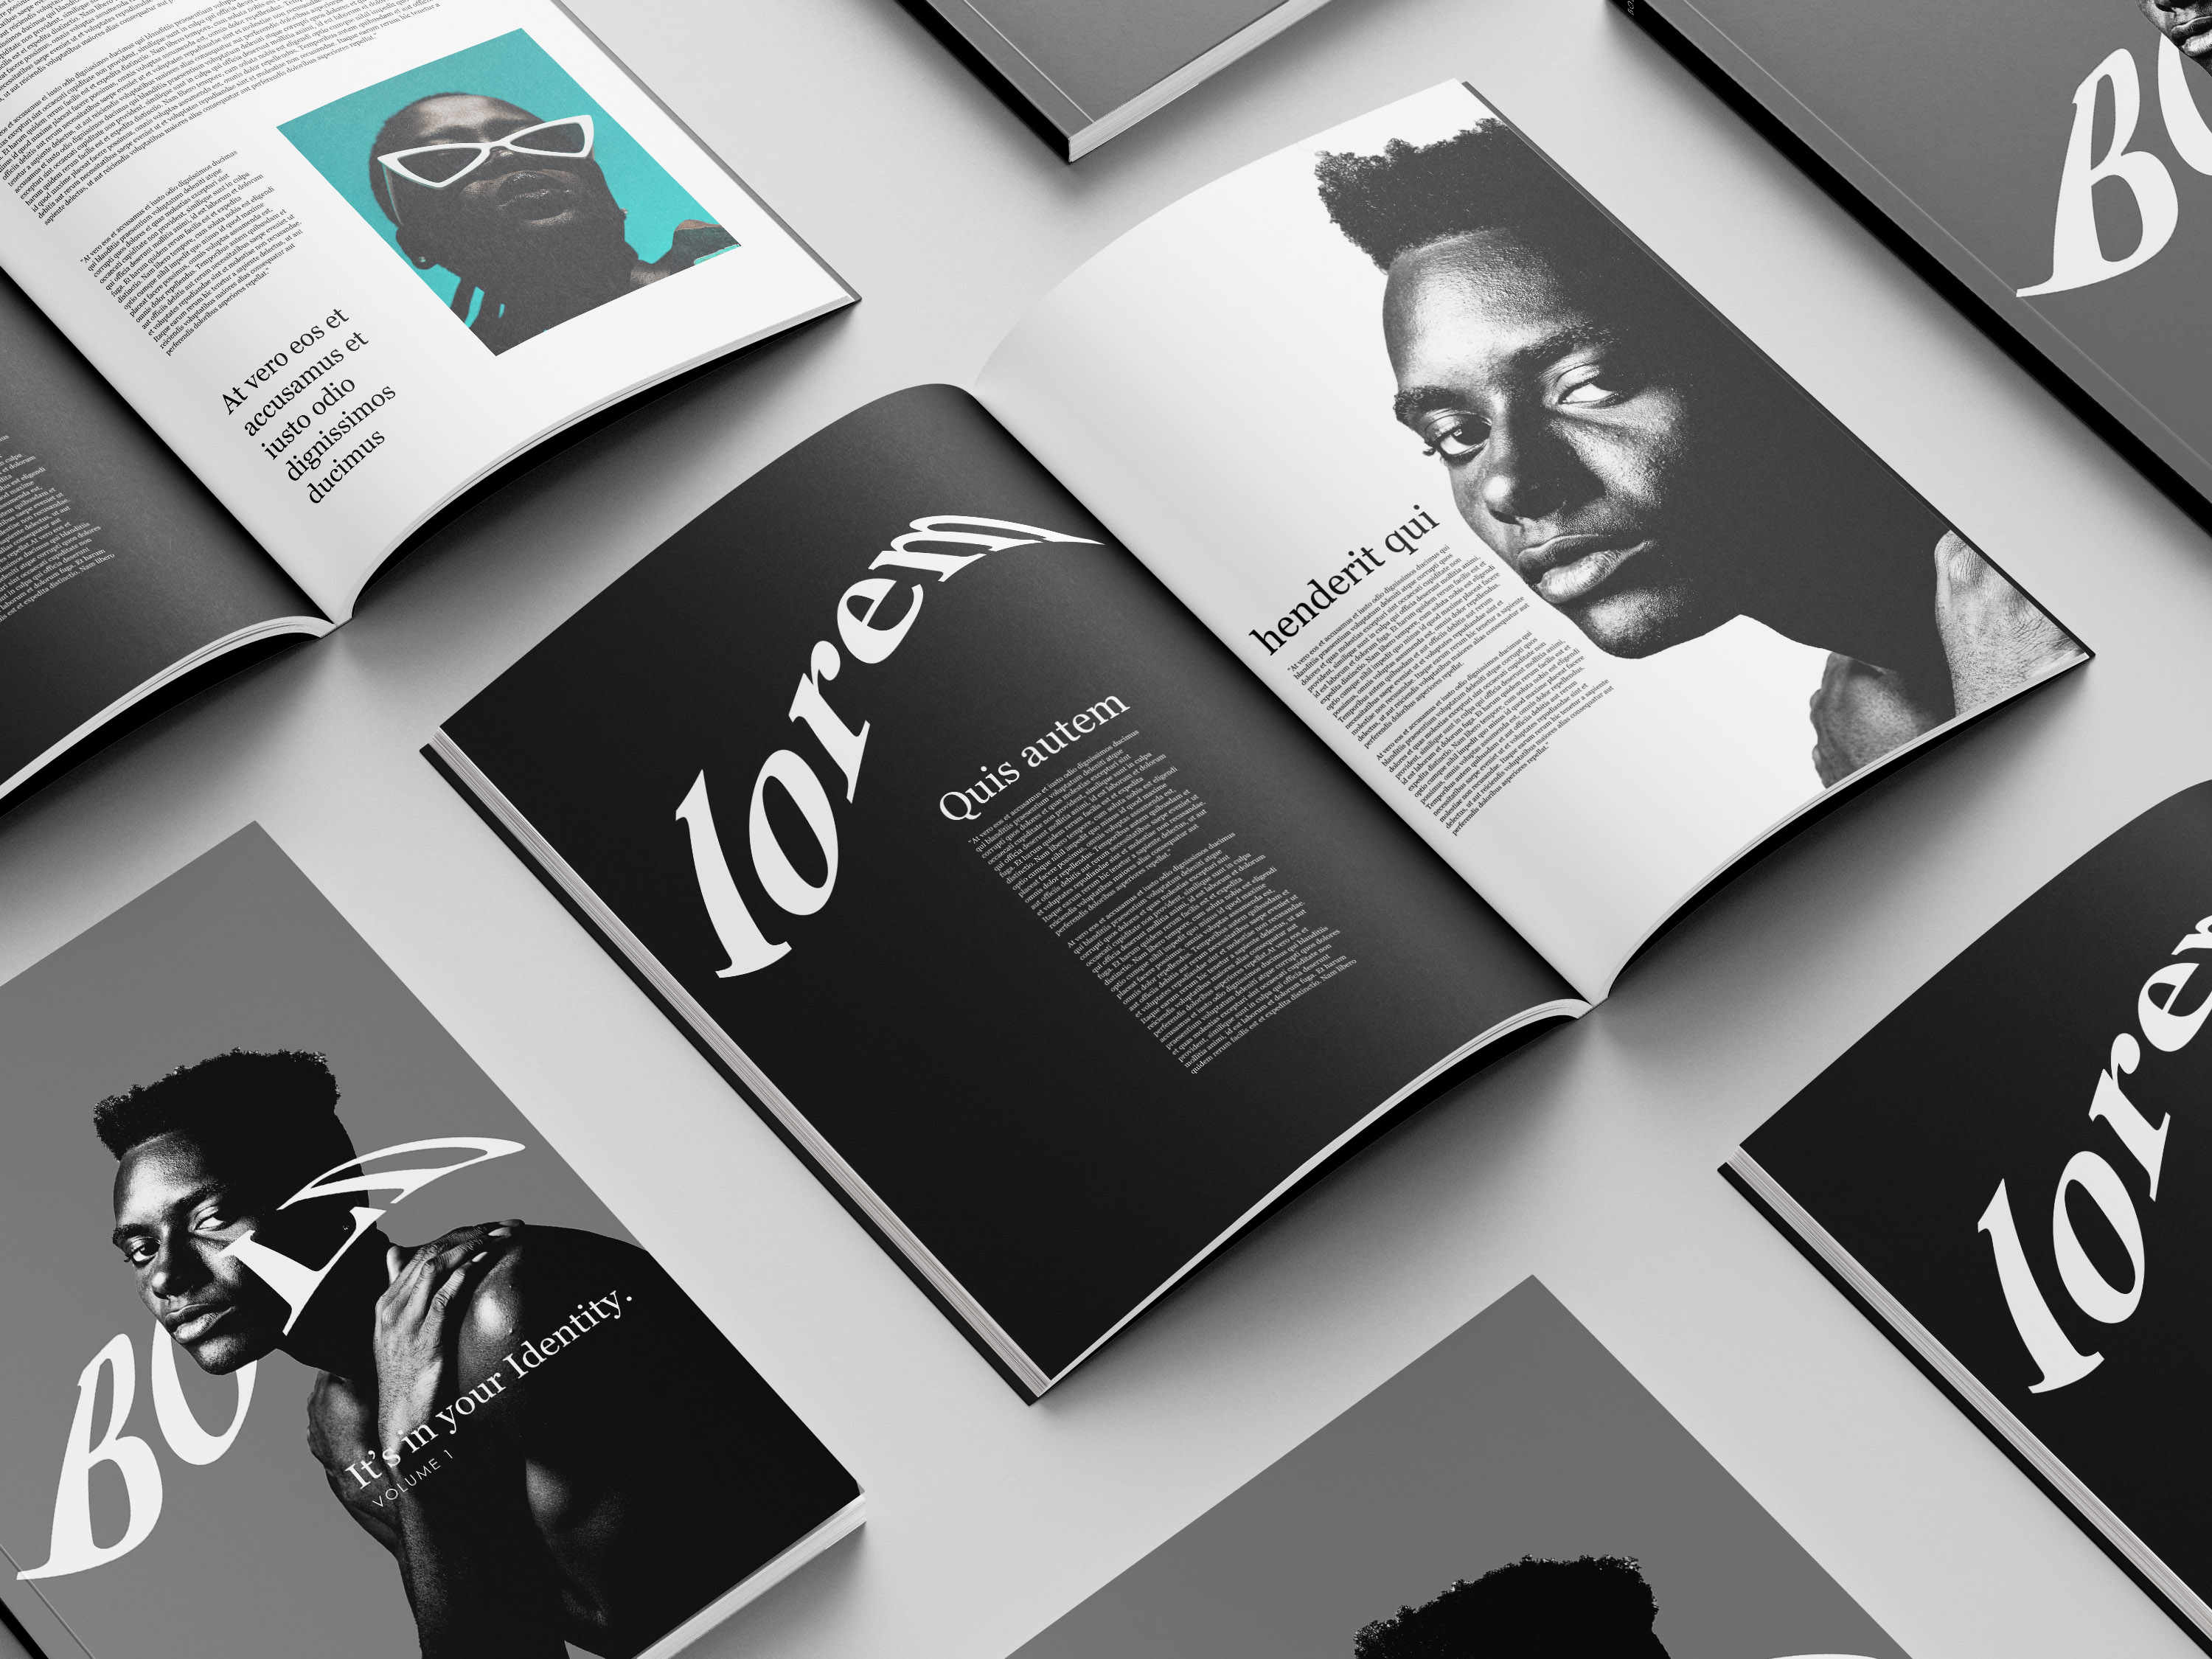 Work by Miran Jurisevic showing a magazine spread mock-up for 'Bold' in black and white